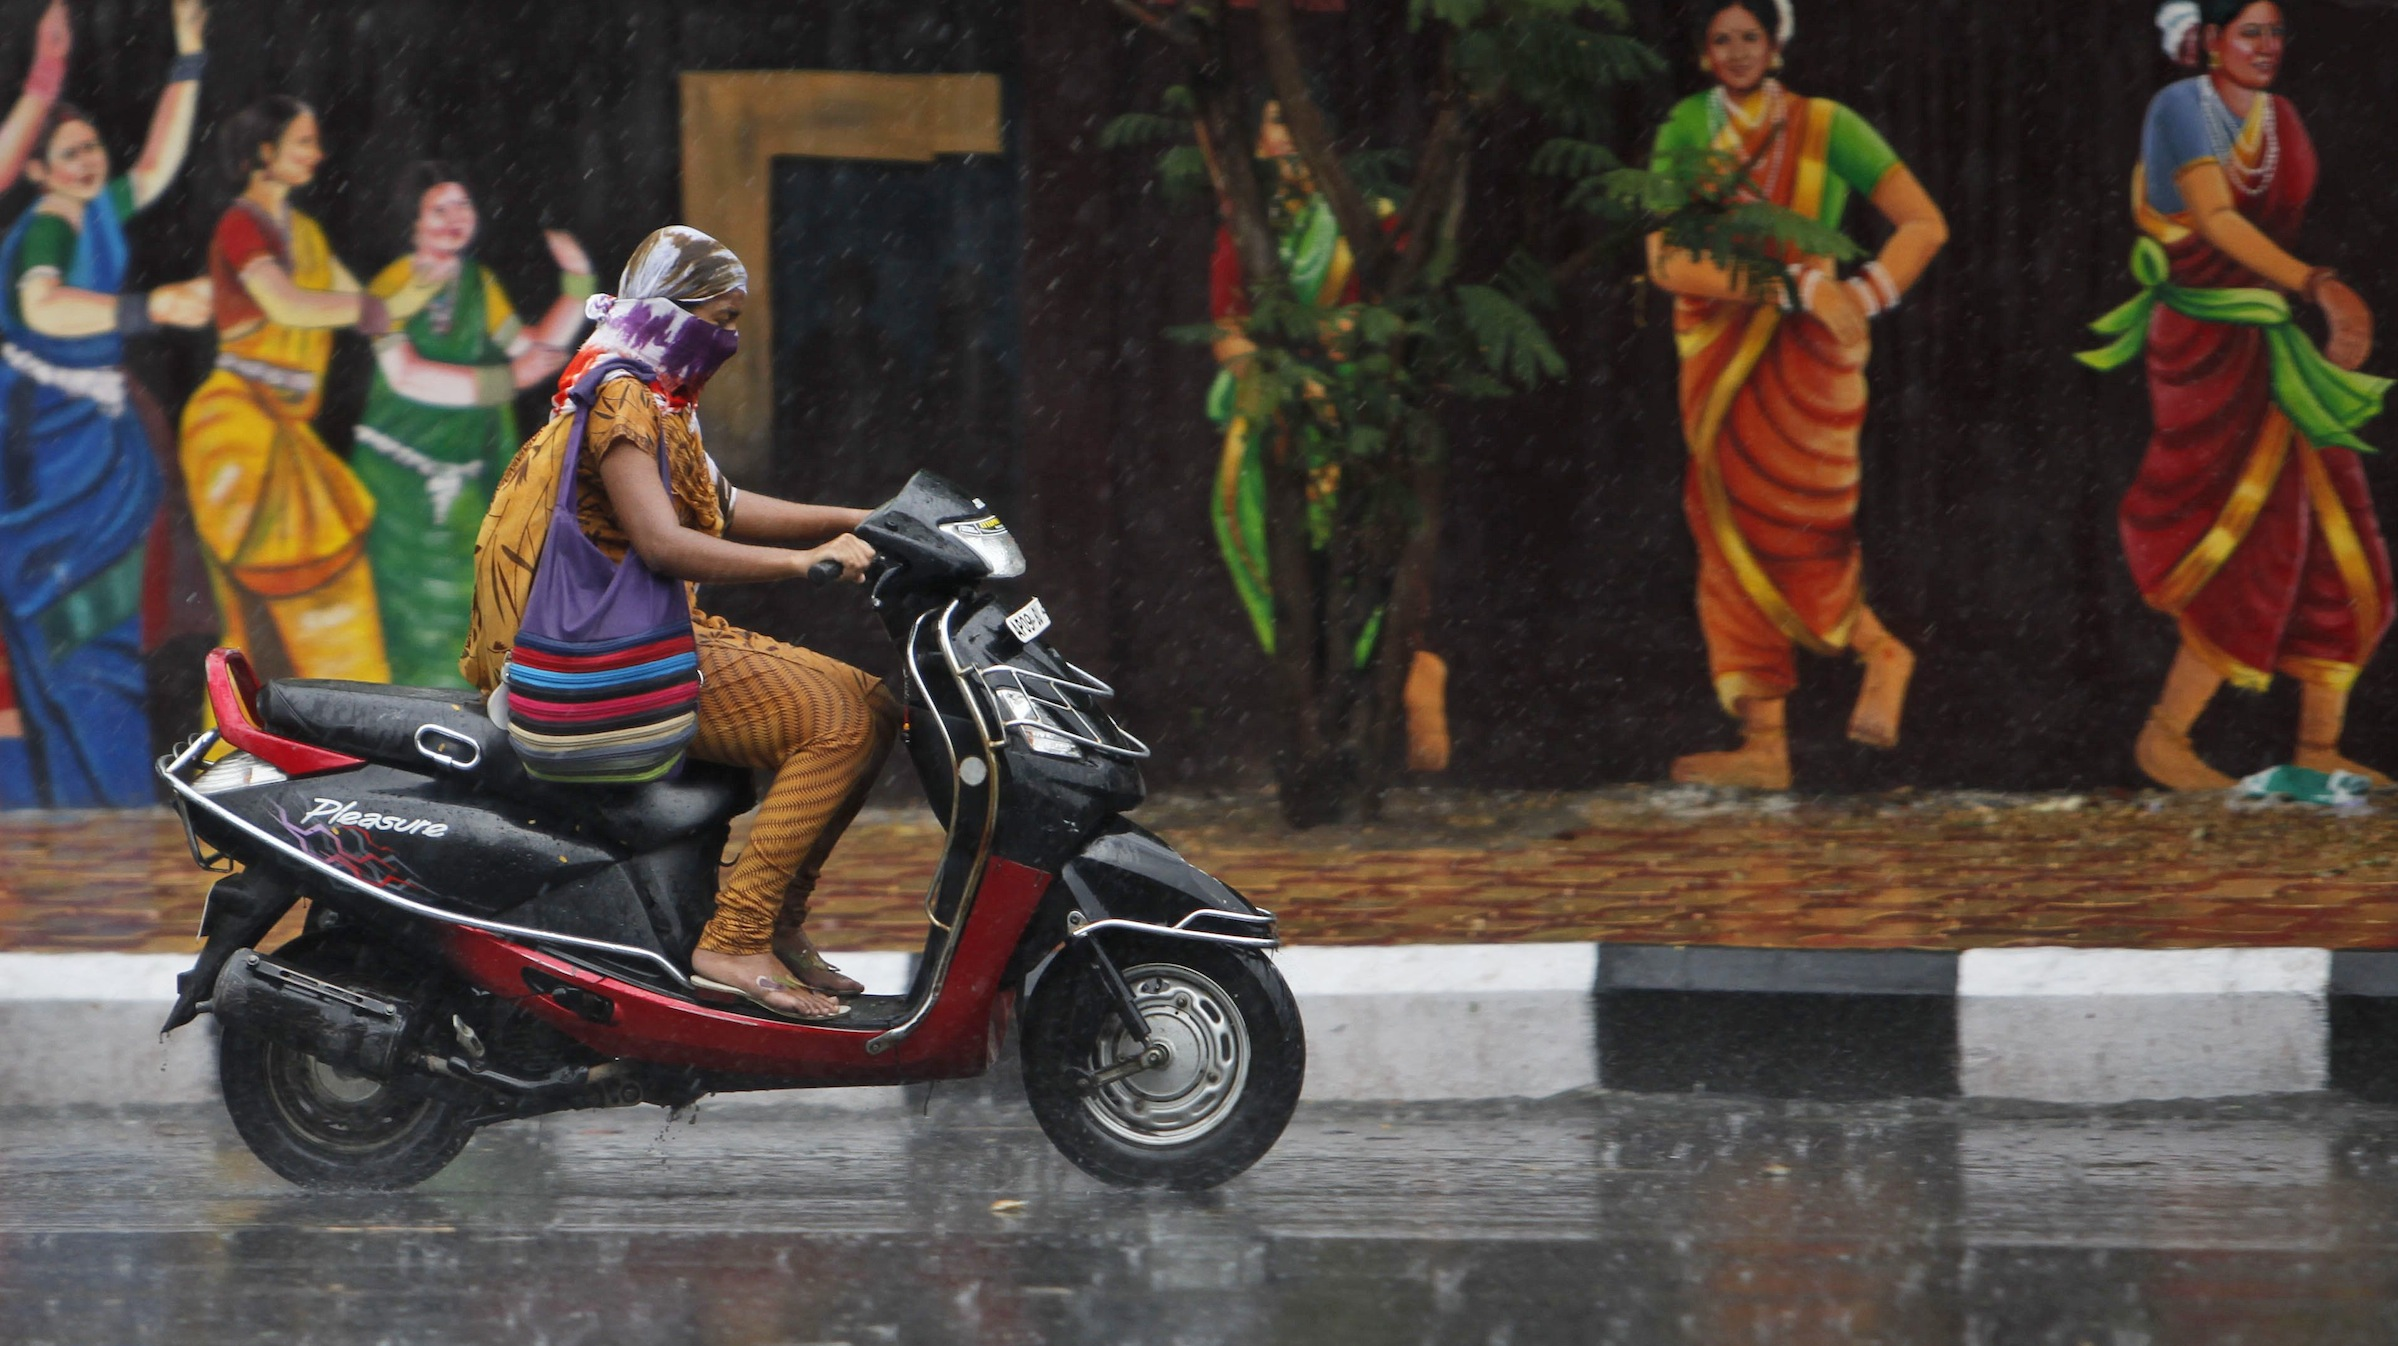 An Indian women rides a scooter during a sudden shower in Hyderabad, India, Tuesday, April 23, 2013. (AP Photo/Mahesh Kumar A.)